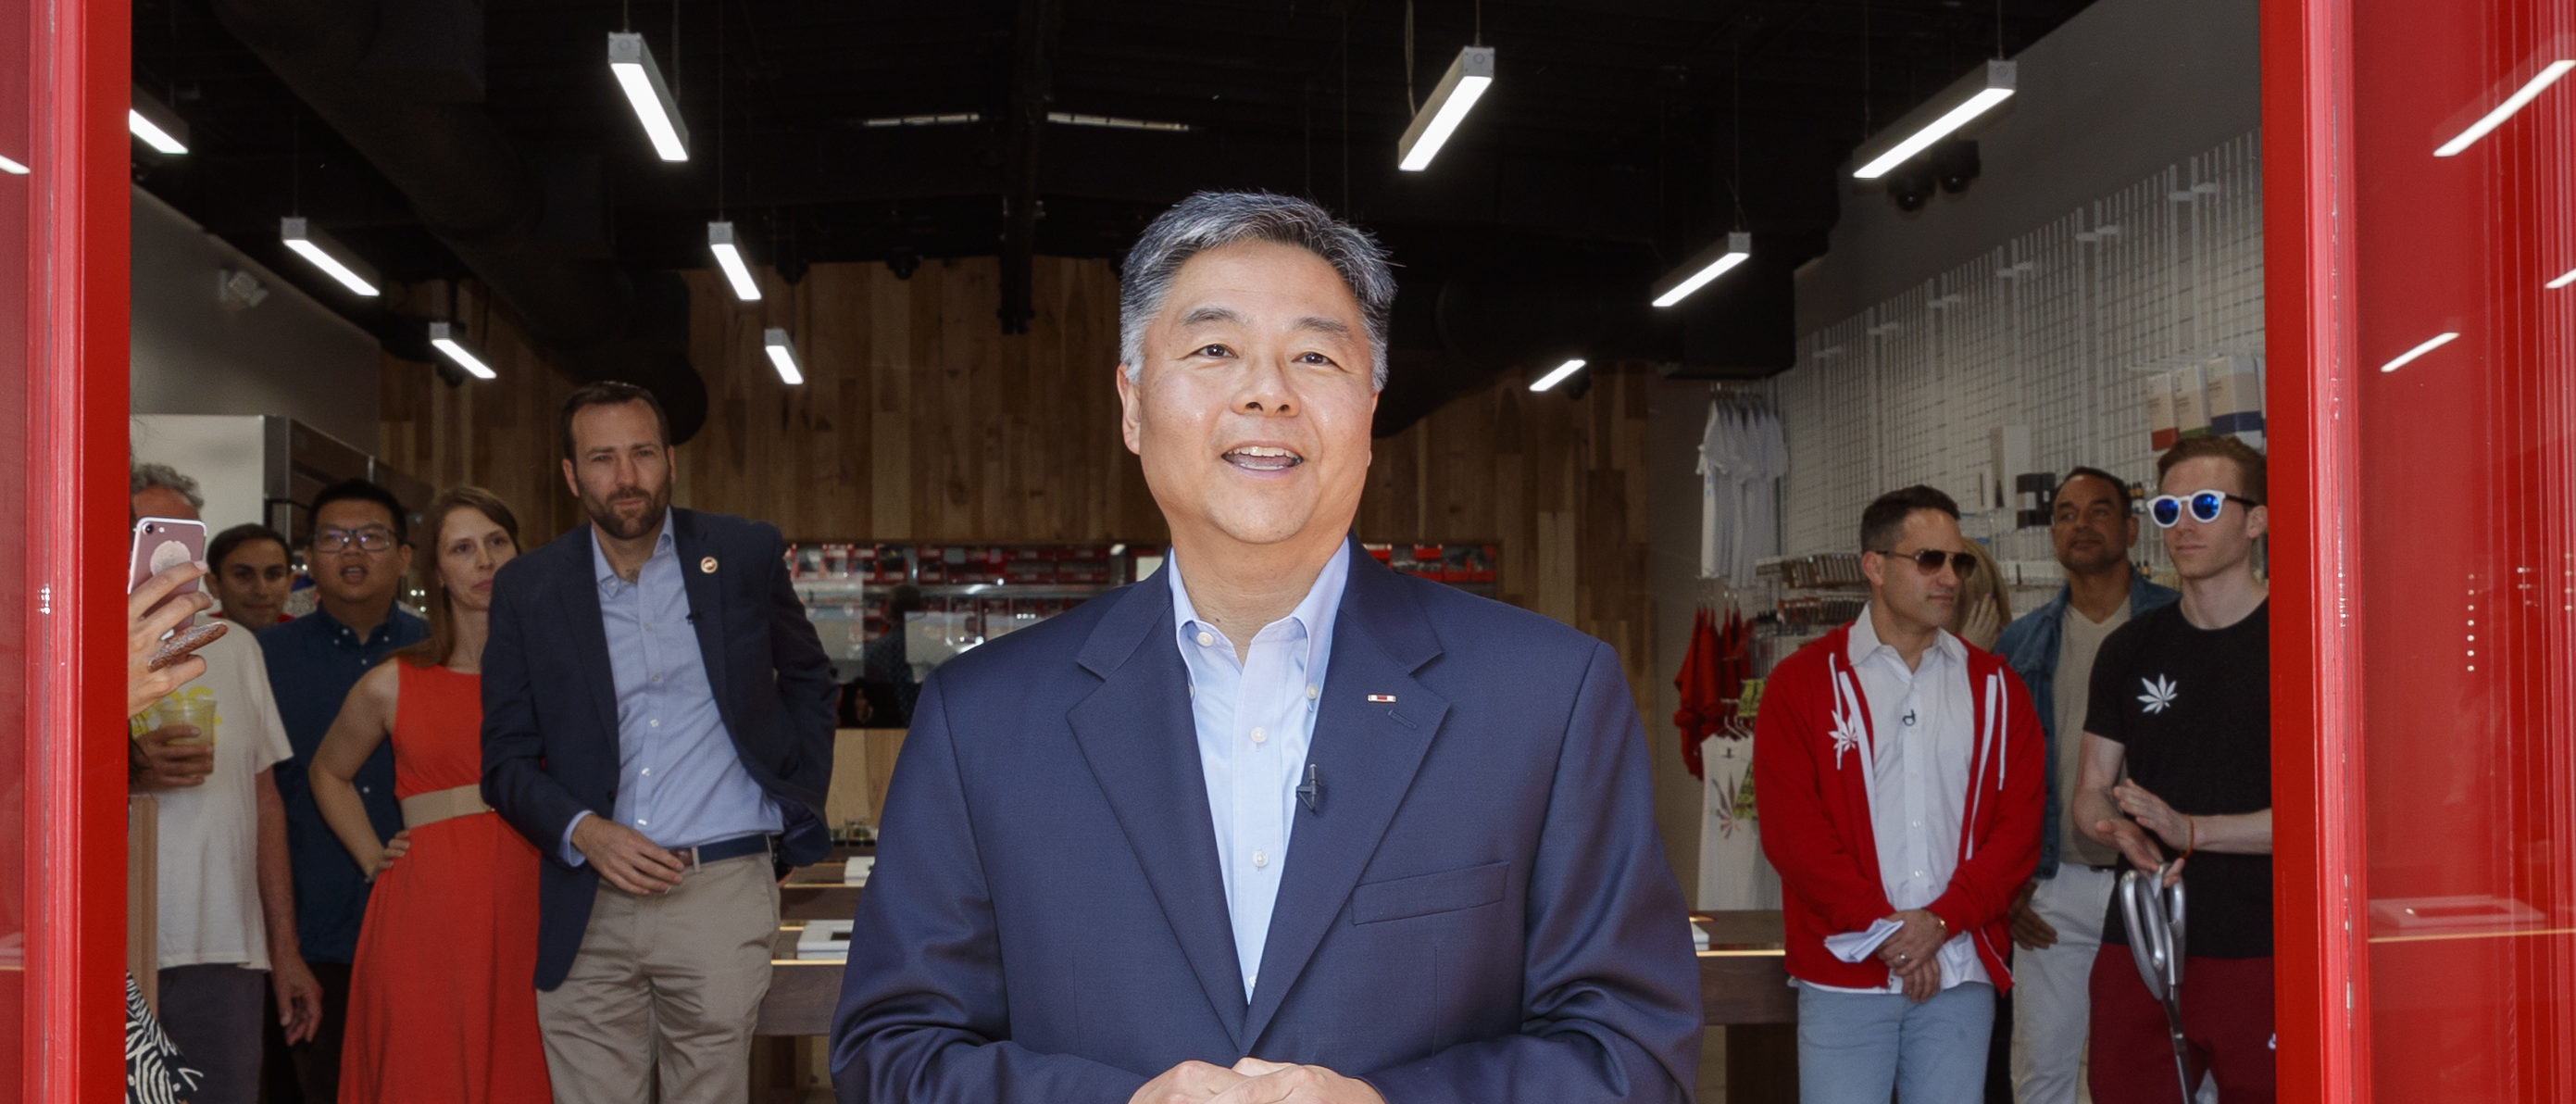 VENICE, CA - JUNE 09: Congressman Ted W. Lieu speaks at the MedMen Abbot Kinney store ribbon cutting ceremony on June 9, 2018 in Venice, California. (Photo by Rich Polk/Getty Images for MedMen Enterprises)